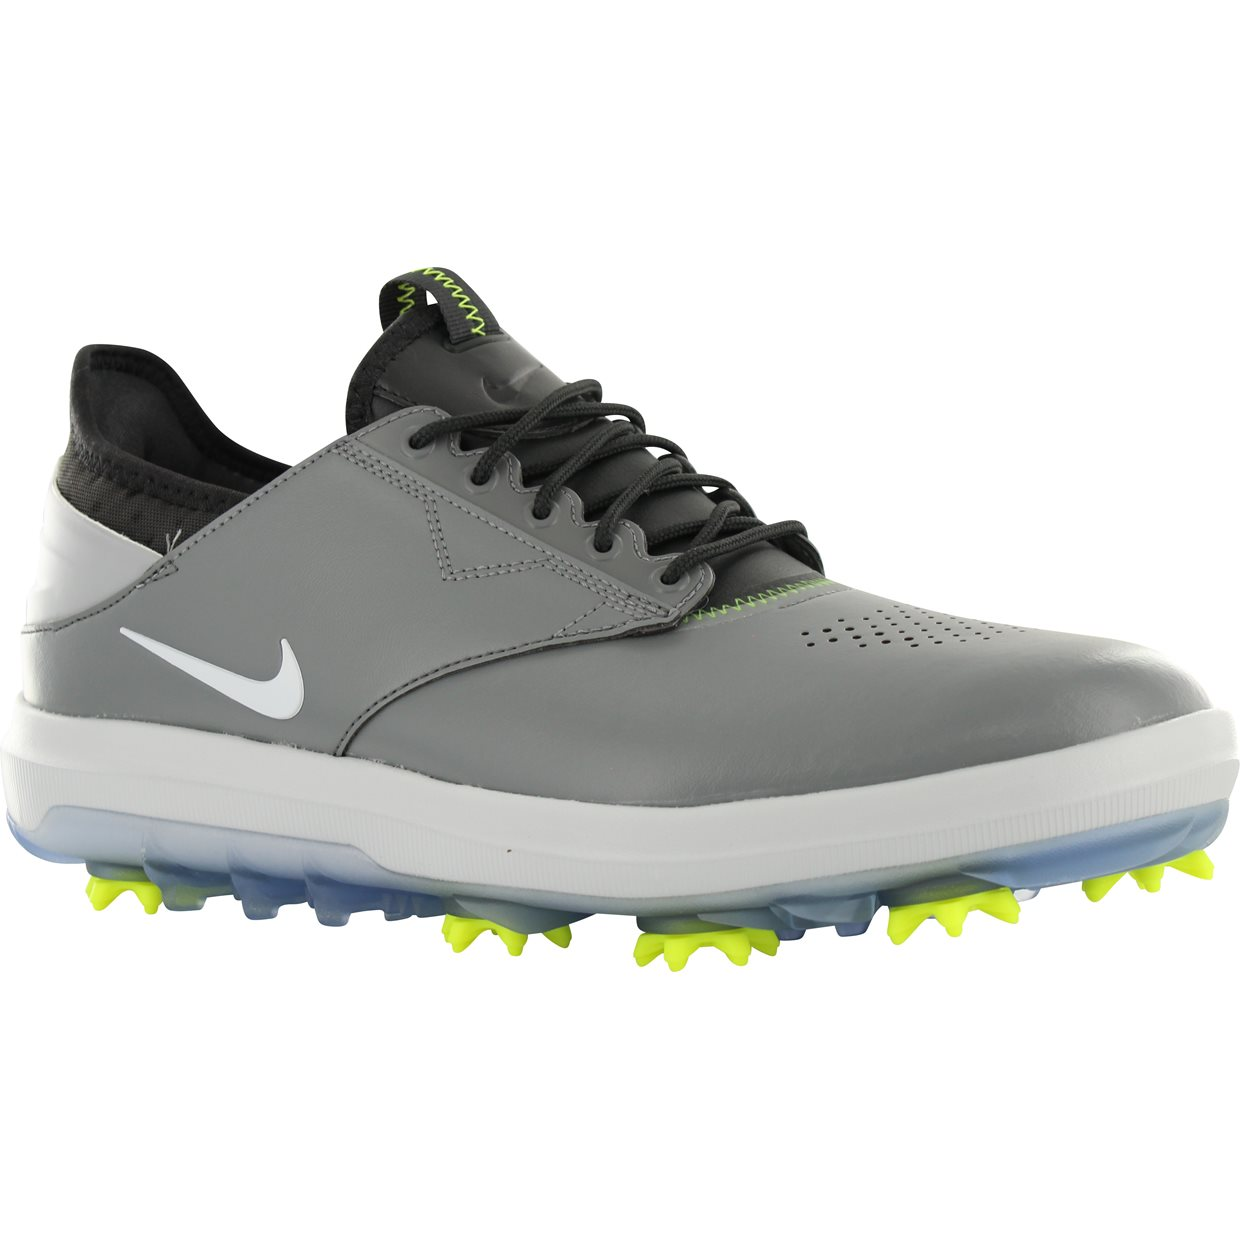 bfcfc0642c74 Nike Air Zoom Direct Golf Shoes at GlobalGolf.com